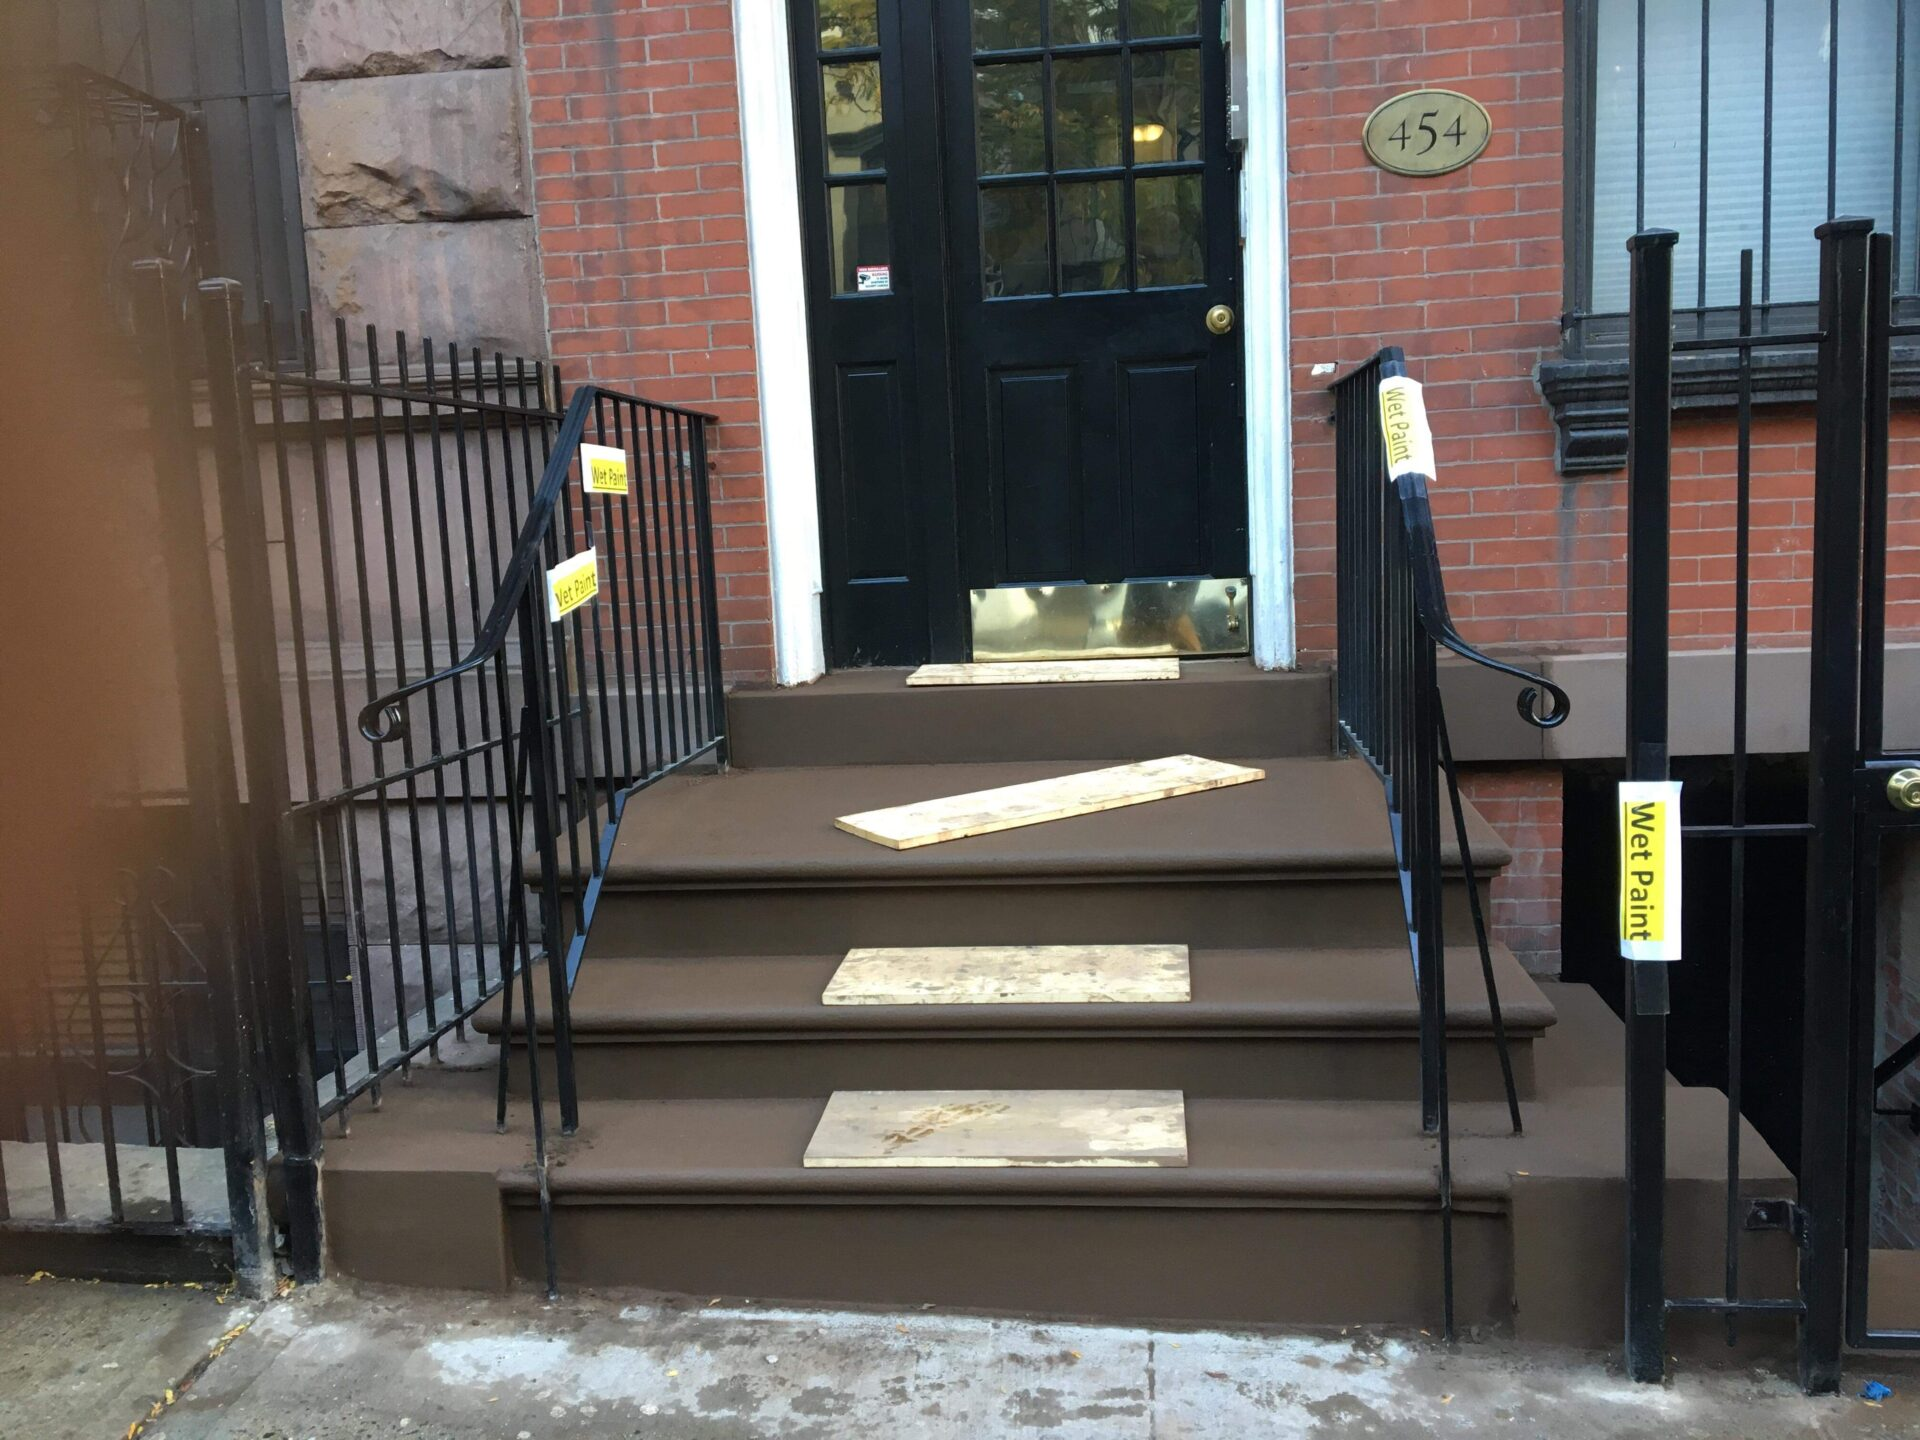 Theater District Brownstone Steps